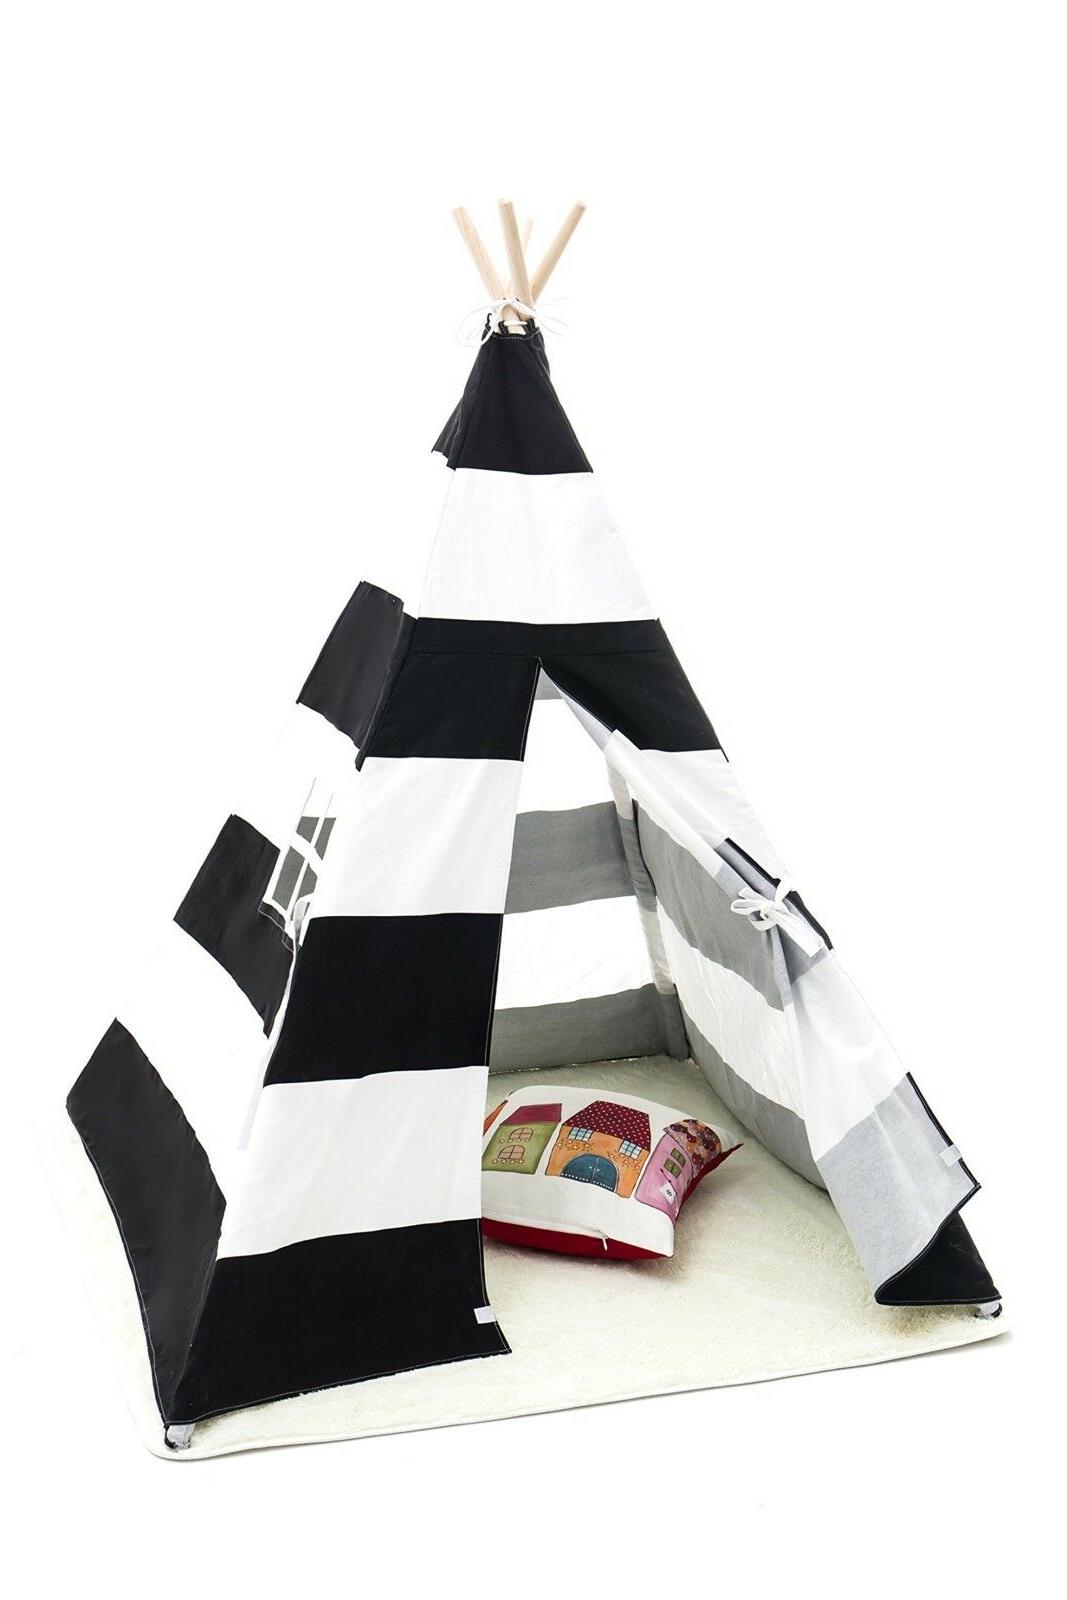 Small Boy Stripe Canvas Play Teepee Tent for Kids 100% Cotto